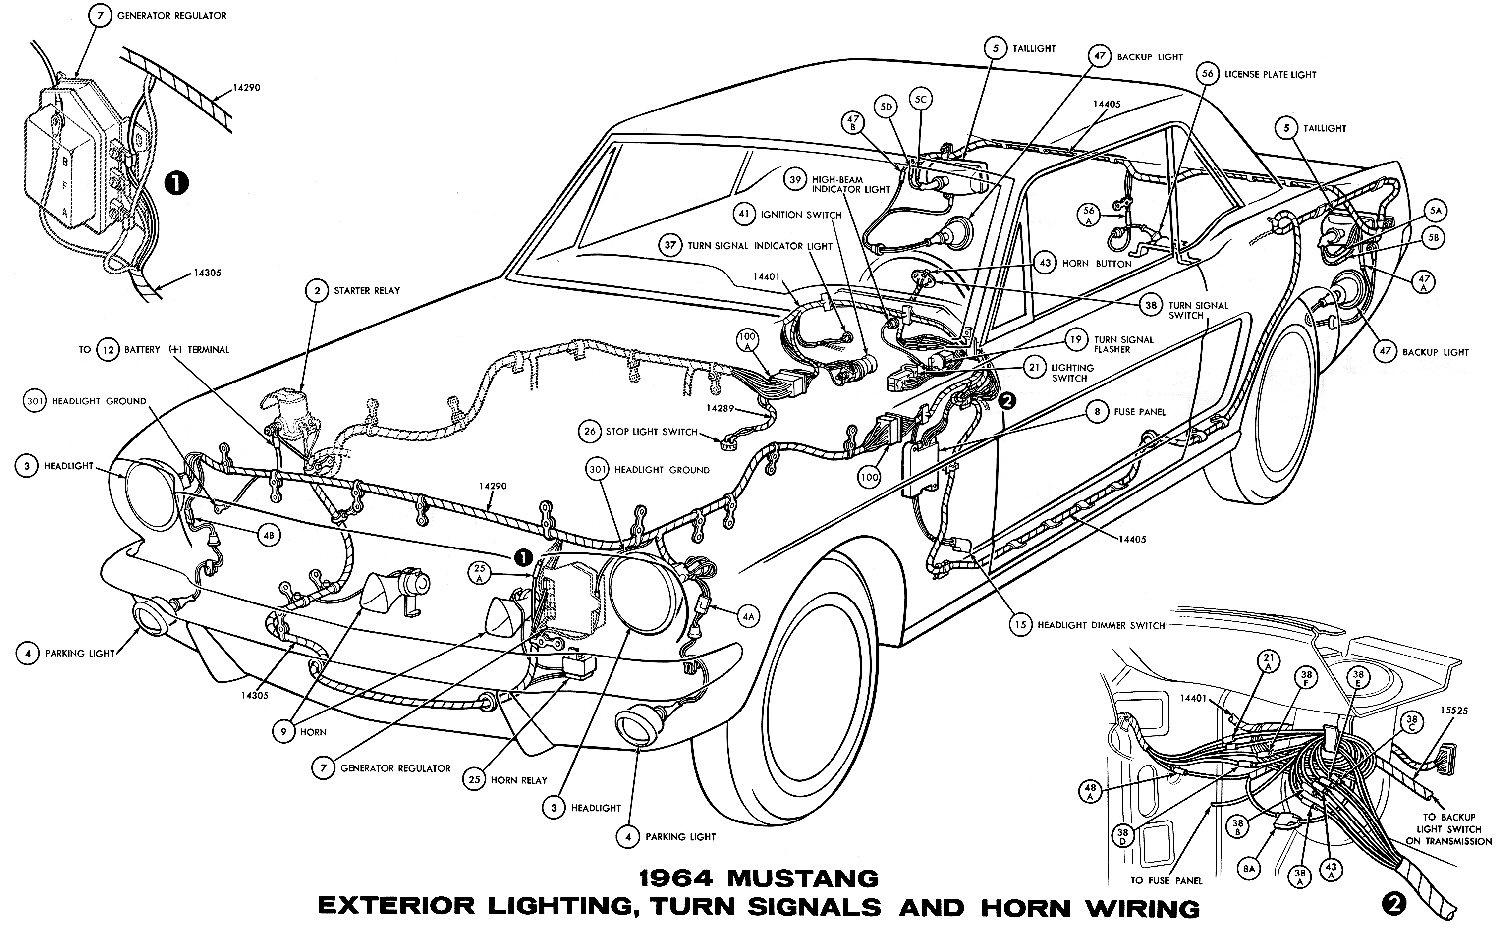 1967 Mustang Horn Wiring Modern Design Of Diagram 1968 Turn Signal Switch Schematic 67 Library Rh 2 Codingcommunity De